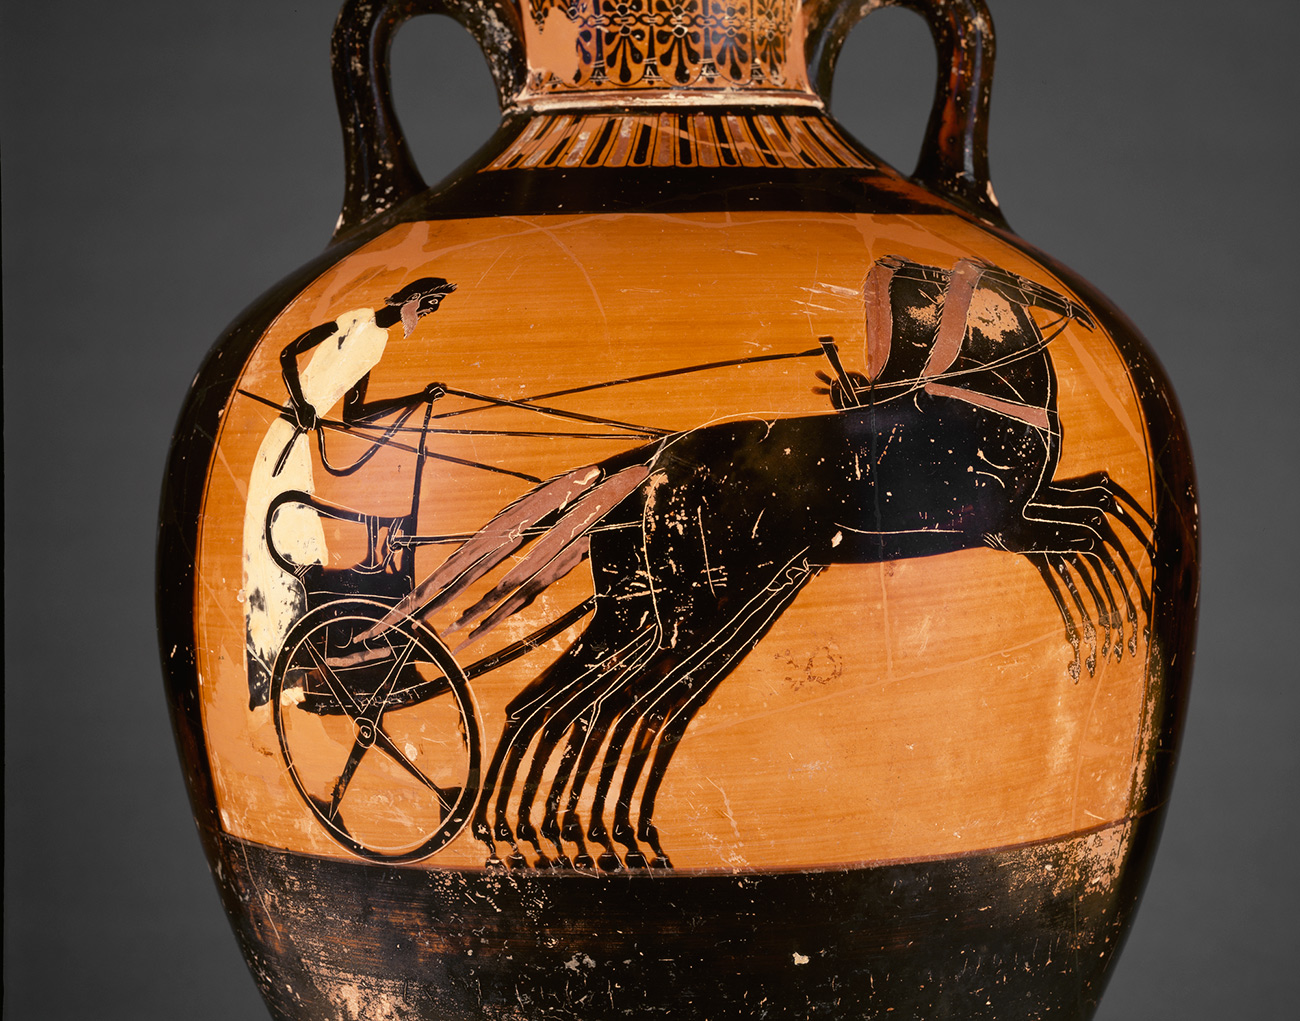 Vase painting showing a charioteer racing to victory in a four-horse chariot